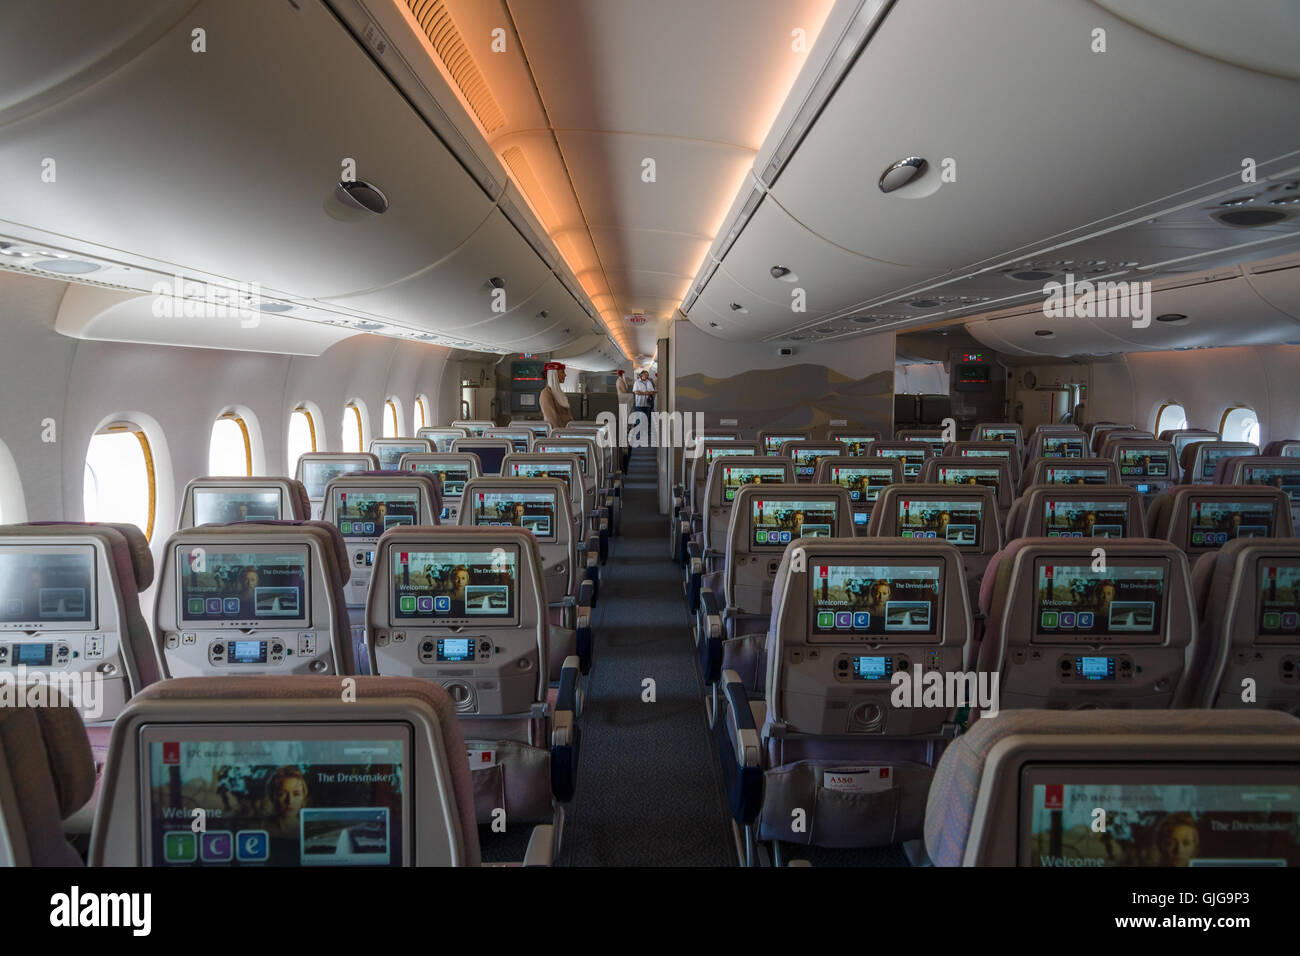 A380 airbus interior stock photos a380 airbus interior for Airbus a380 emirates interior